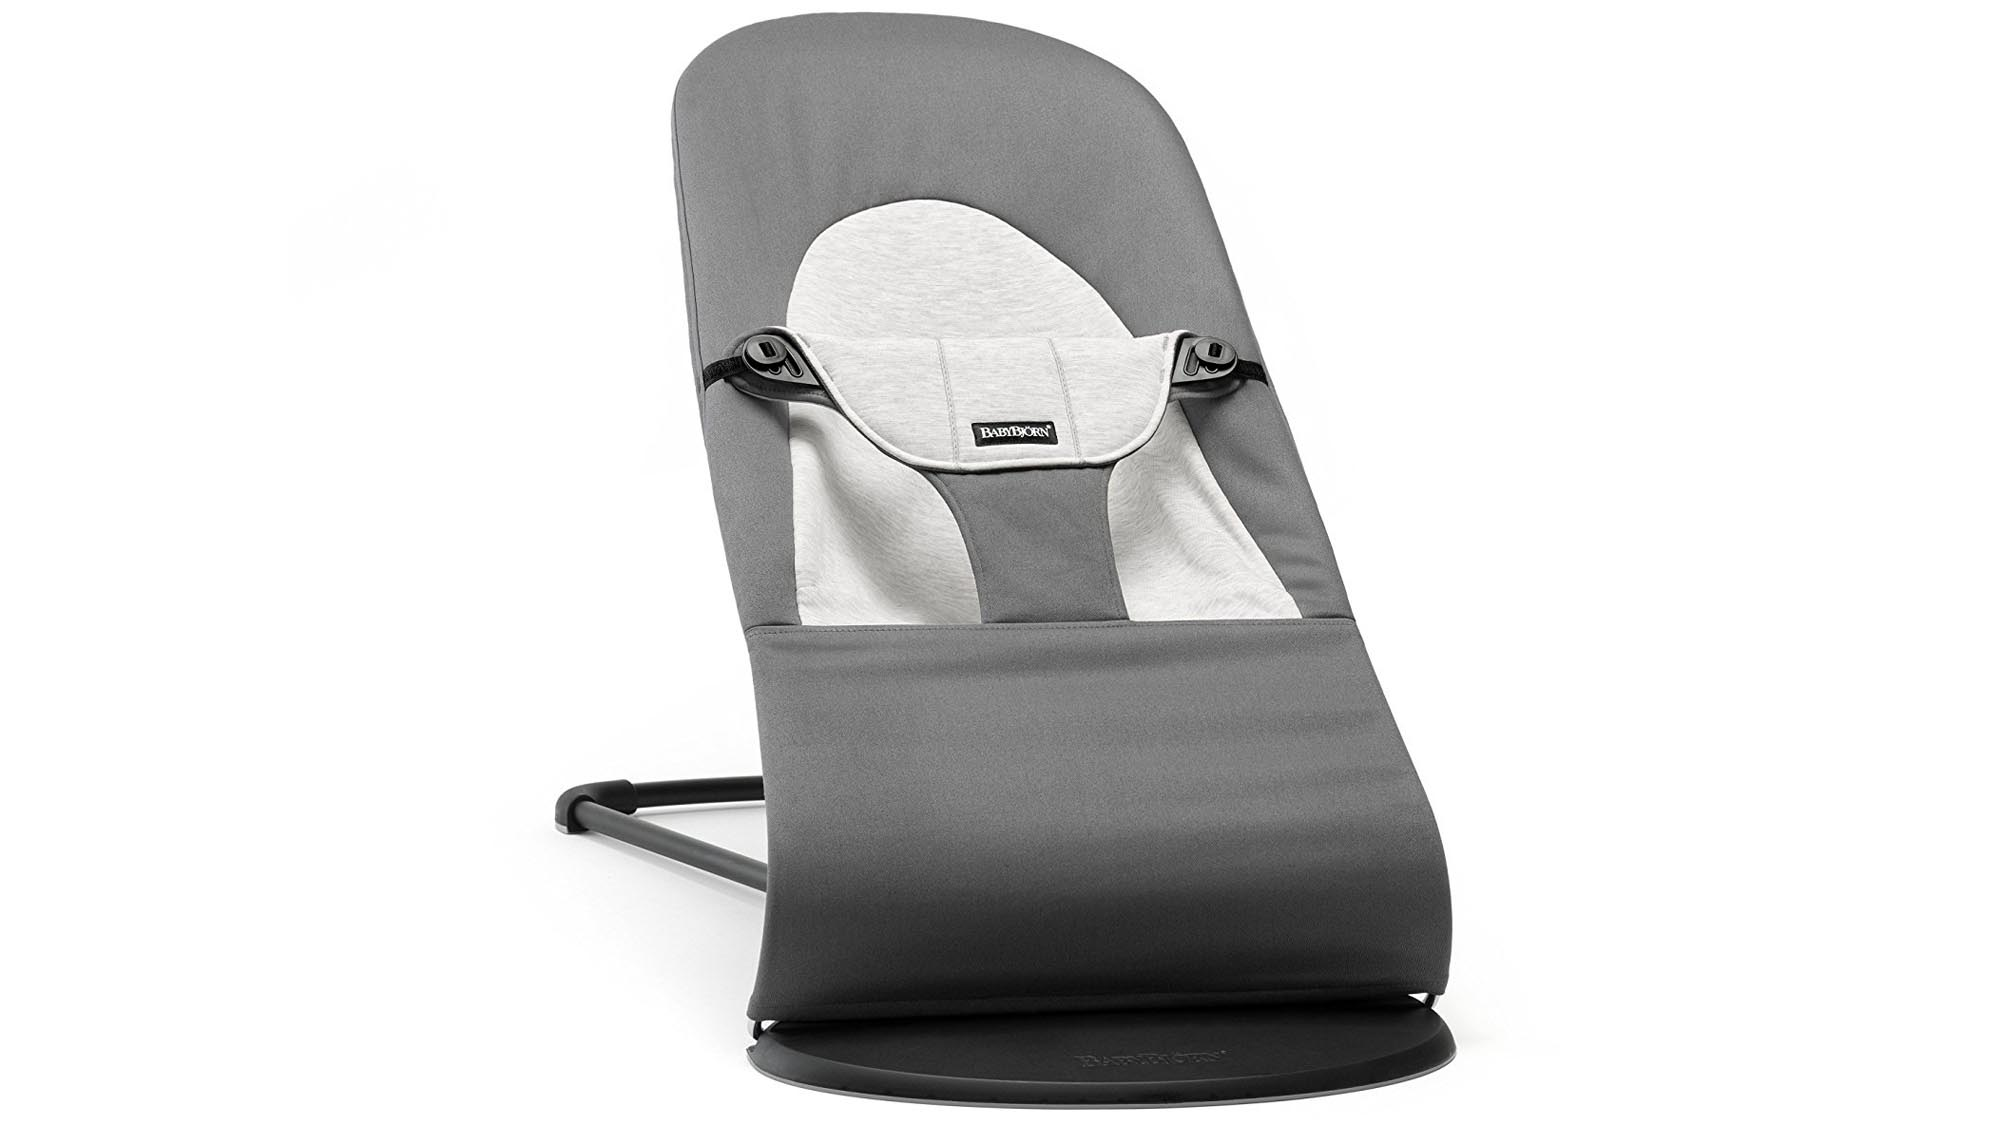 best baby bouncer  of the best baby bouncers from £  expert  - babybjörn's bouncer chairs are ergonomically designed for infants frombirth to two years – and are so comfortable you'll have trouble keepingthem